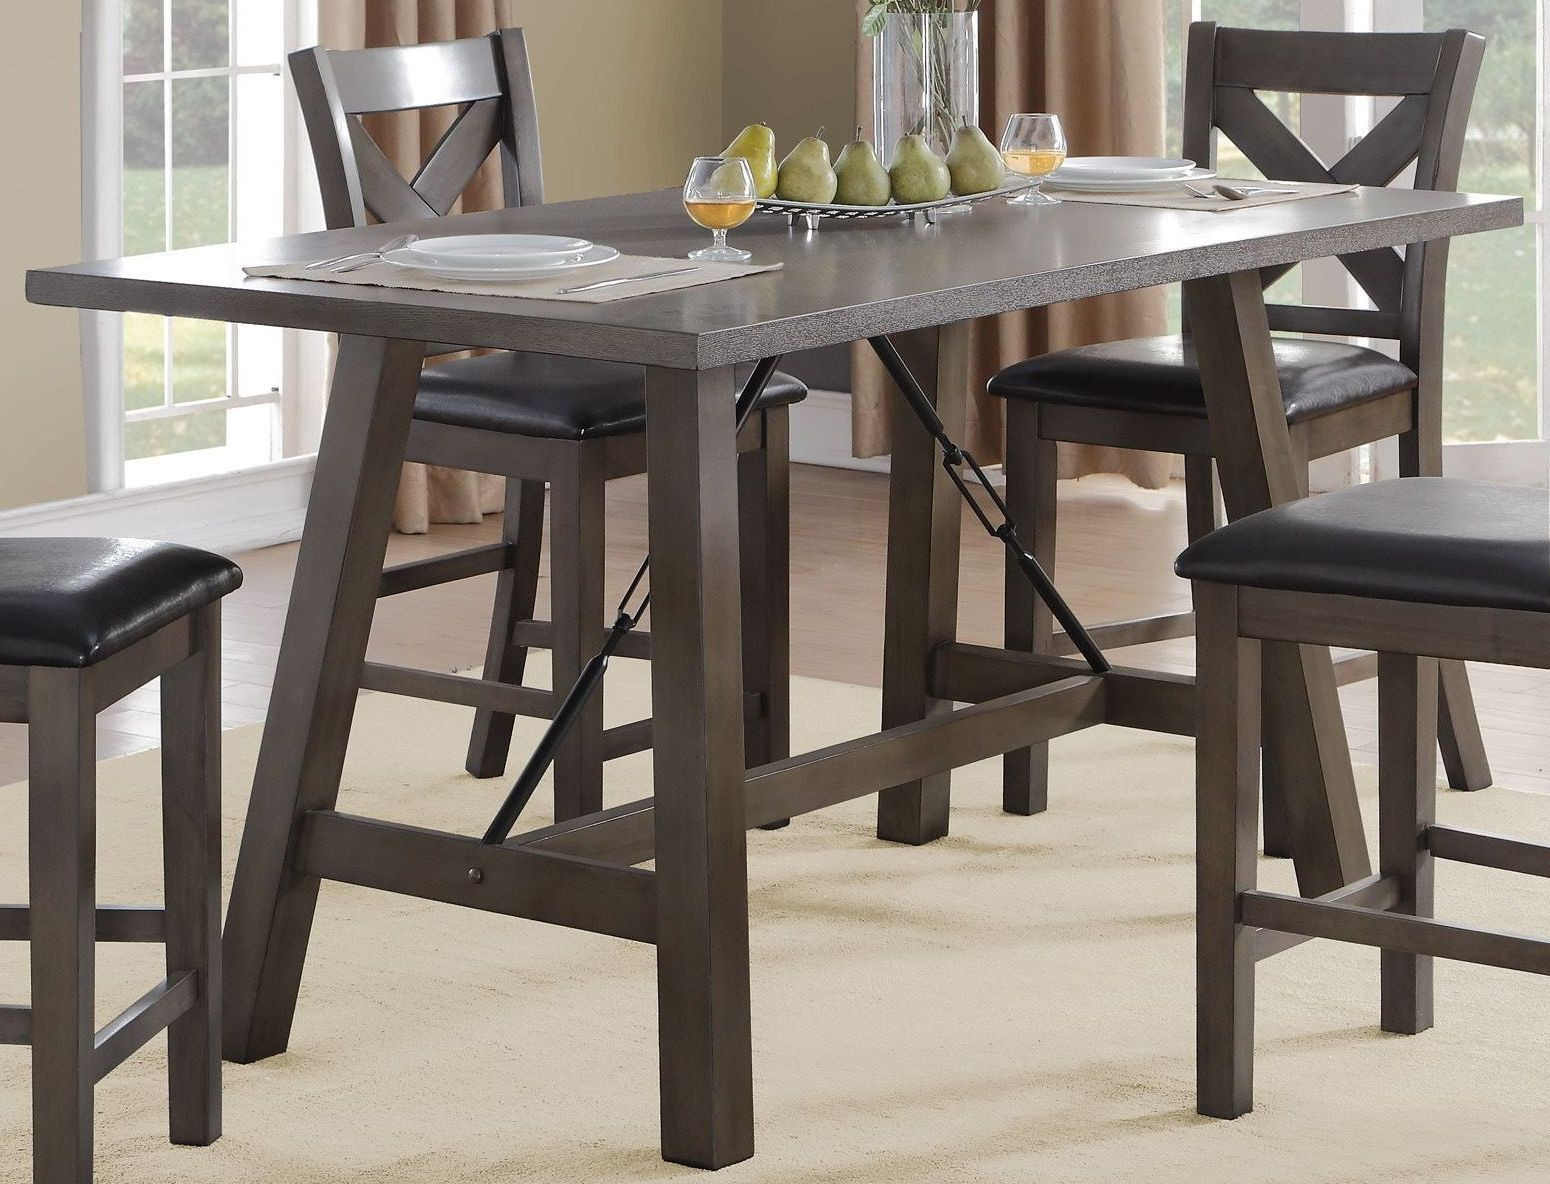 Seaford Black Counter Height Dining Table from Homelegance